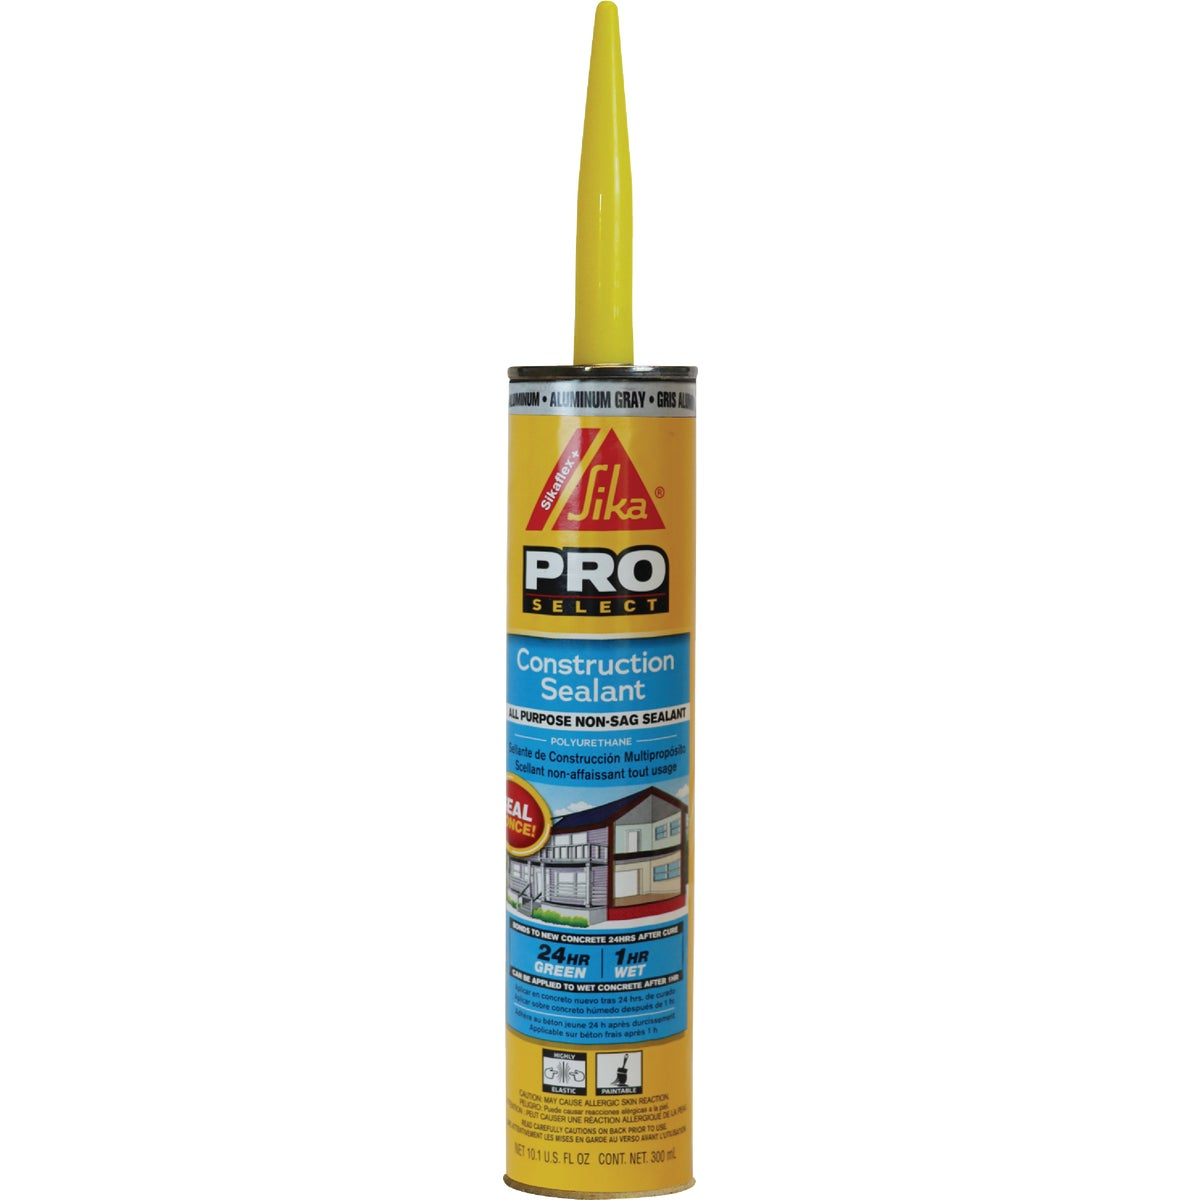 10 AL G SFLX CNS SEALANT - 90629 by Sika Corp